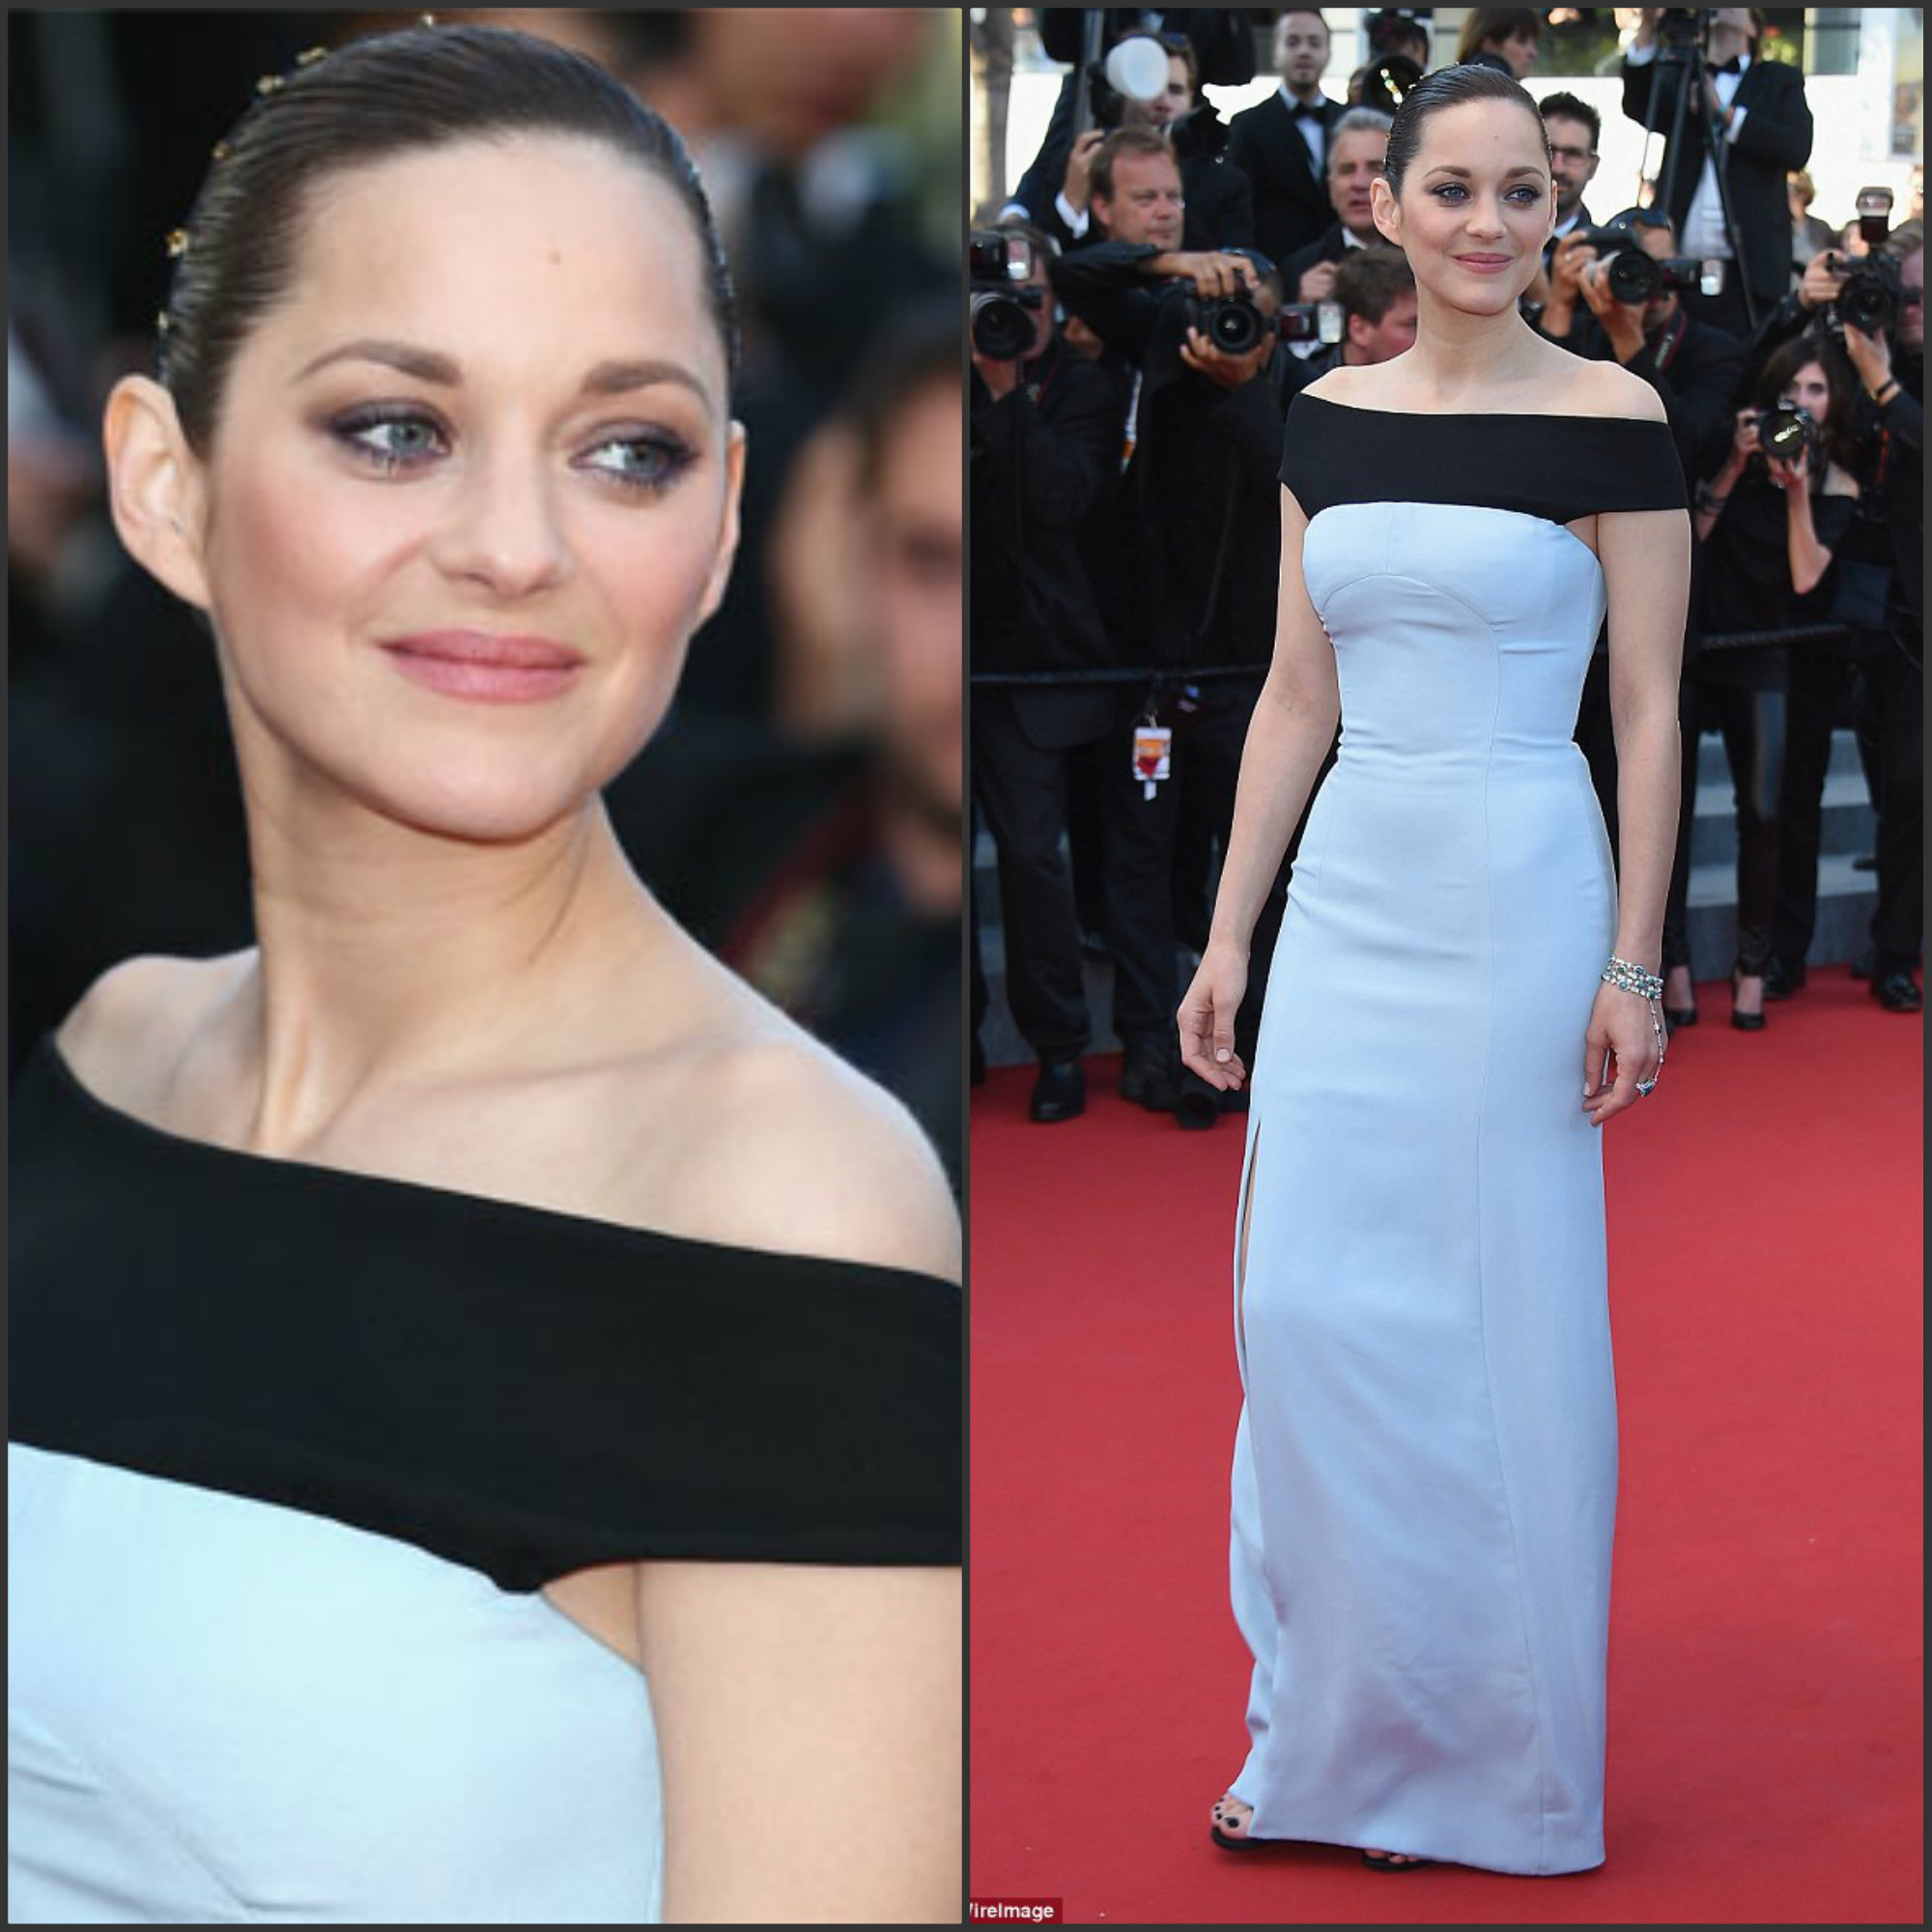 marion-cotillard-in-christian-dior-couture-at-little-prince-le-petit-prince-cannes-film-festival-premiere